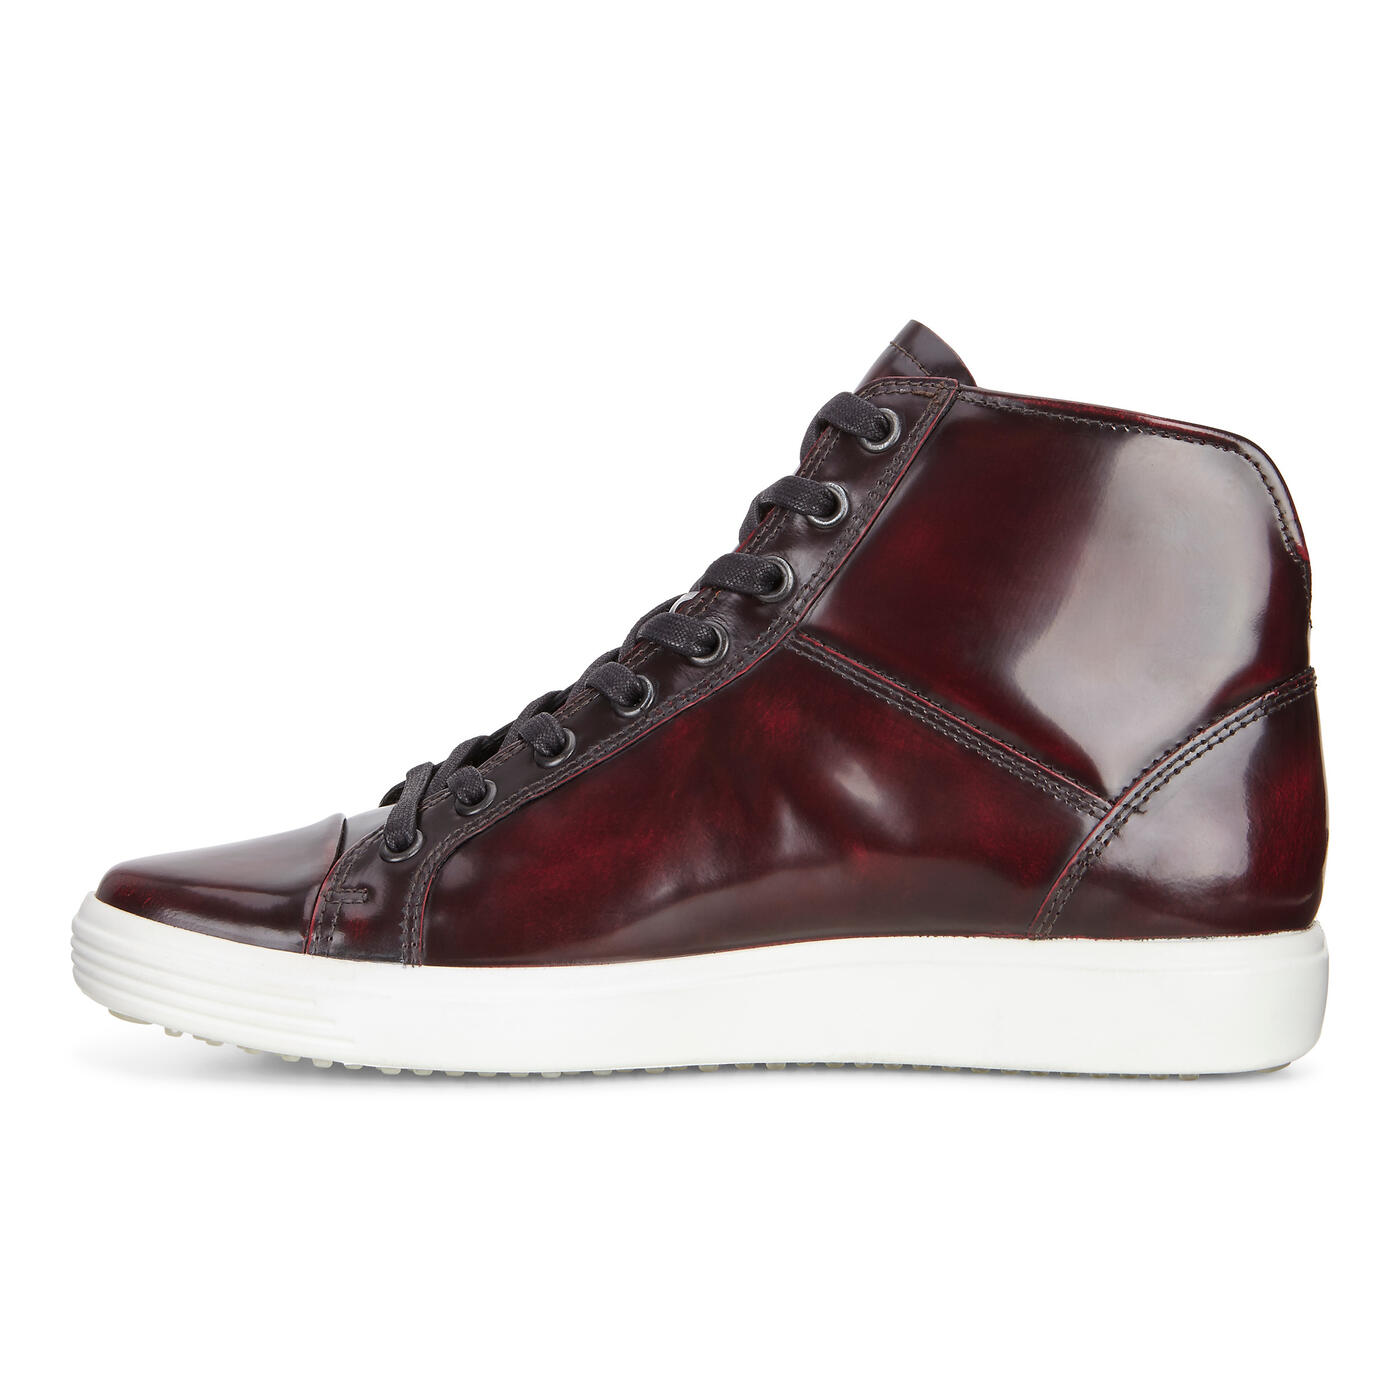 ECCO SOFT7 Ladies Luxe High Top